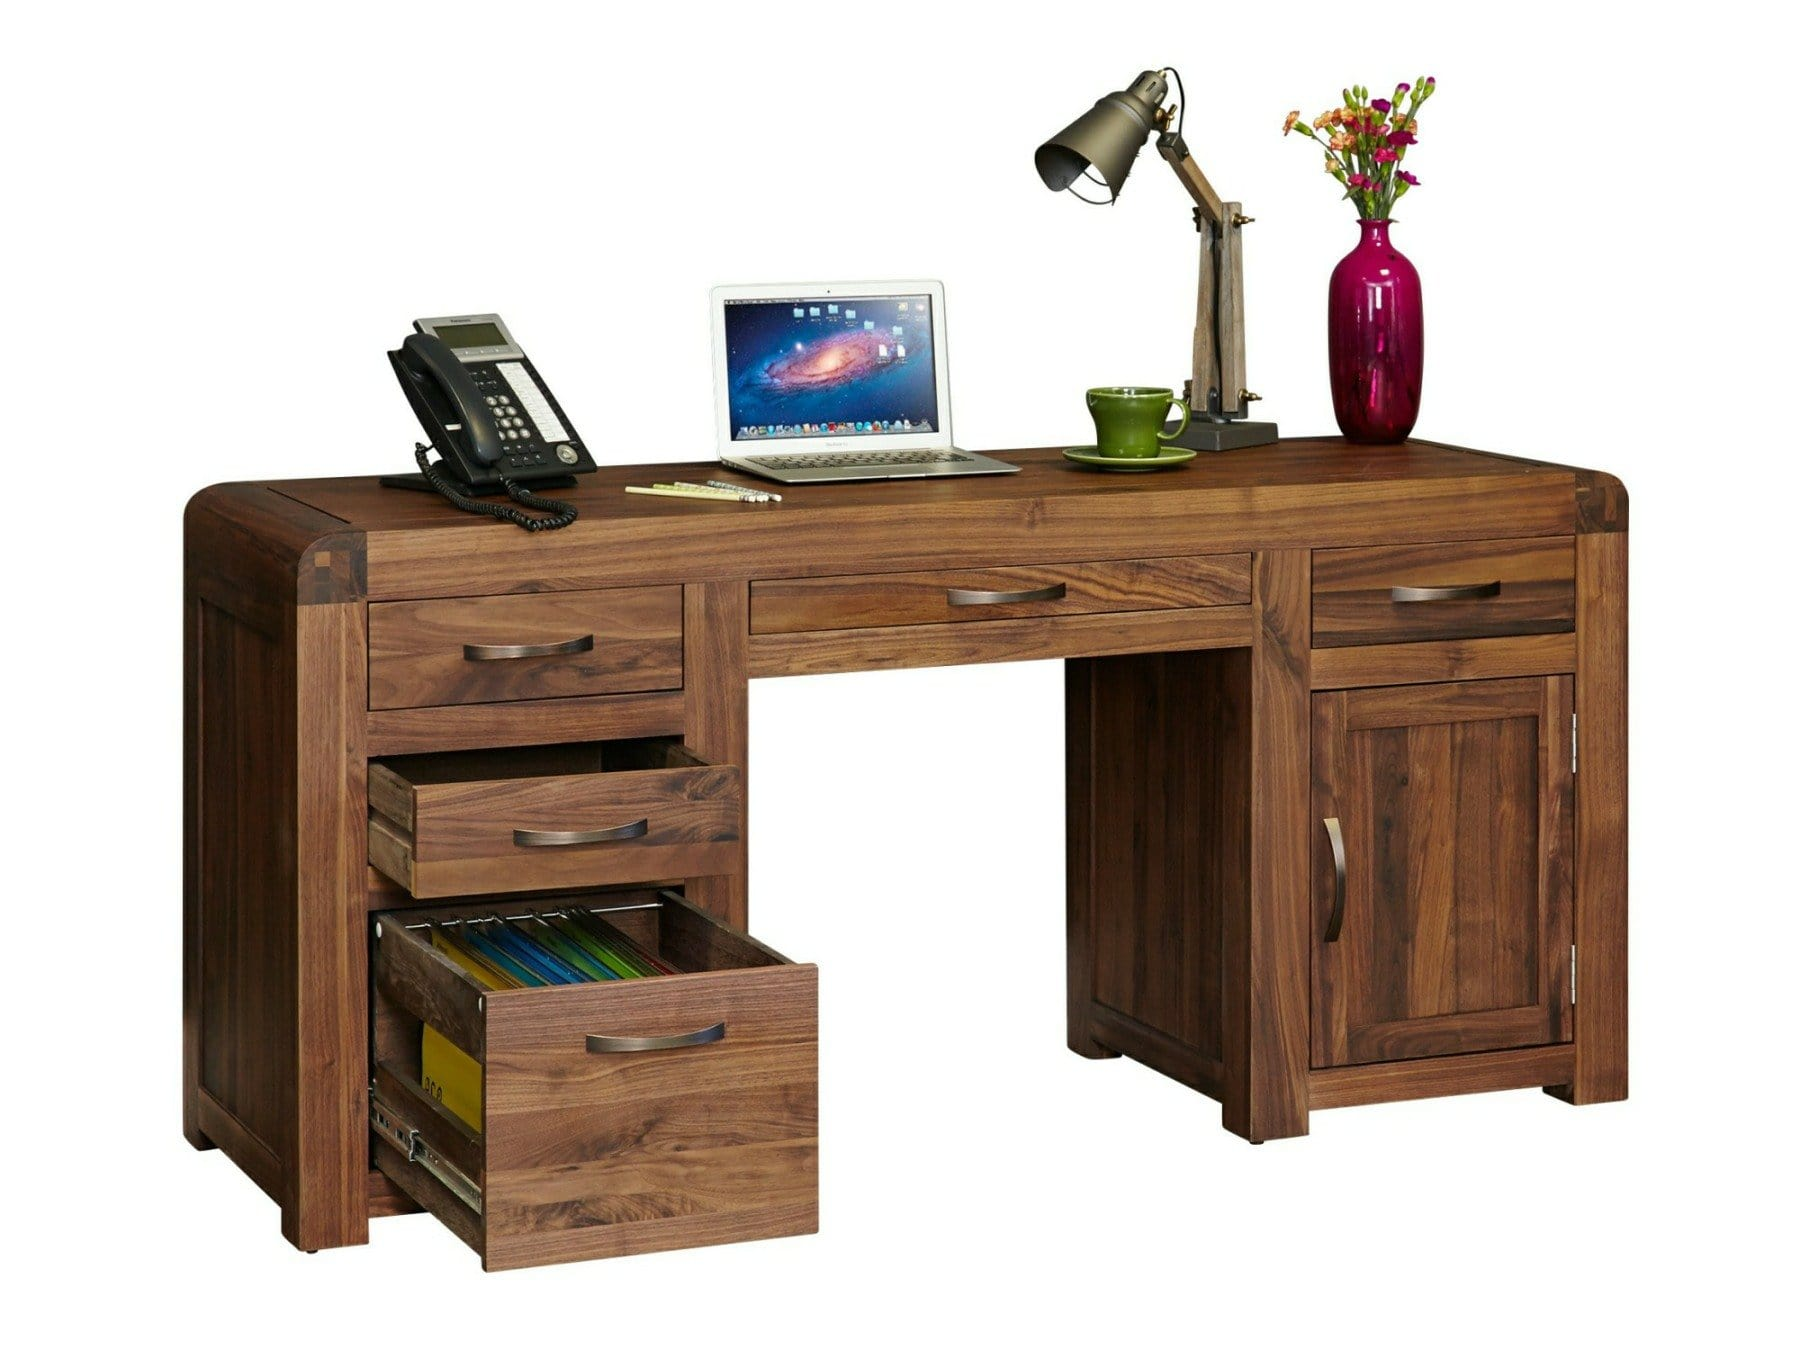 Large dark wood home office desk with filing cabinet and computer cupboard